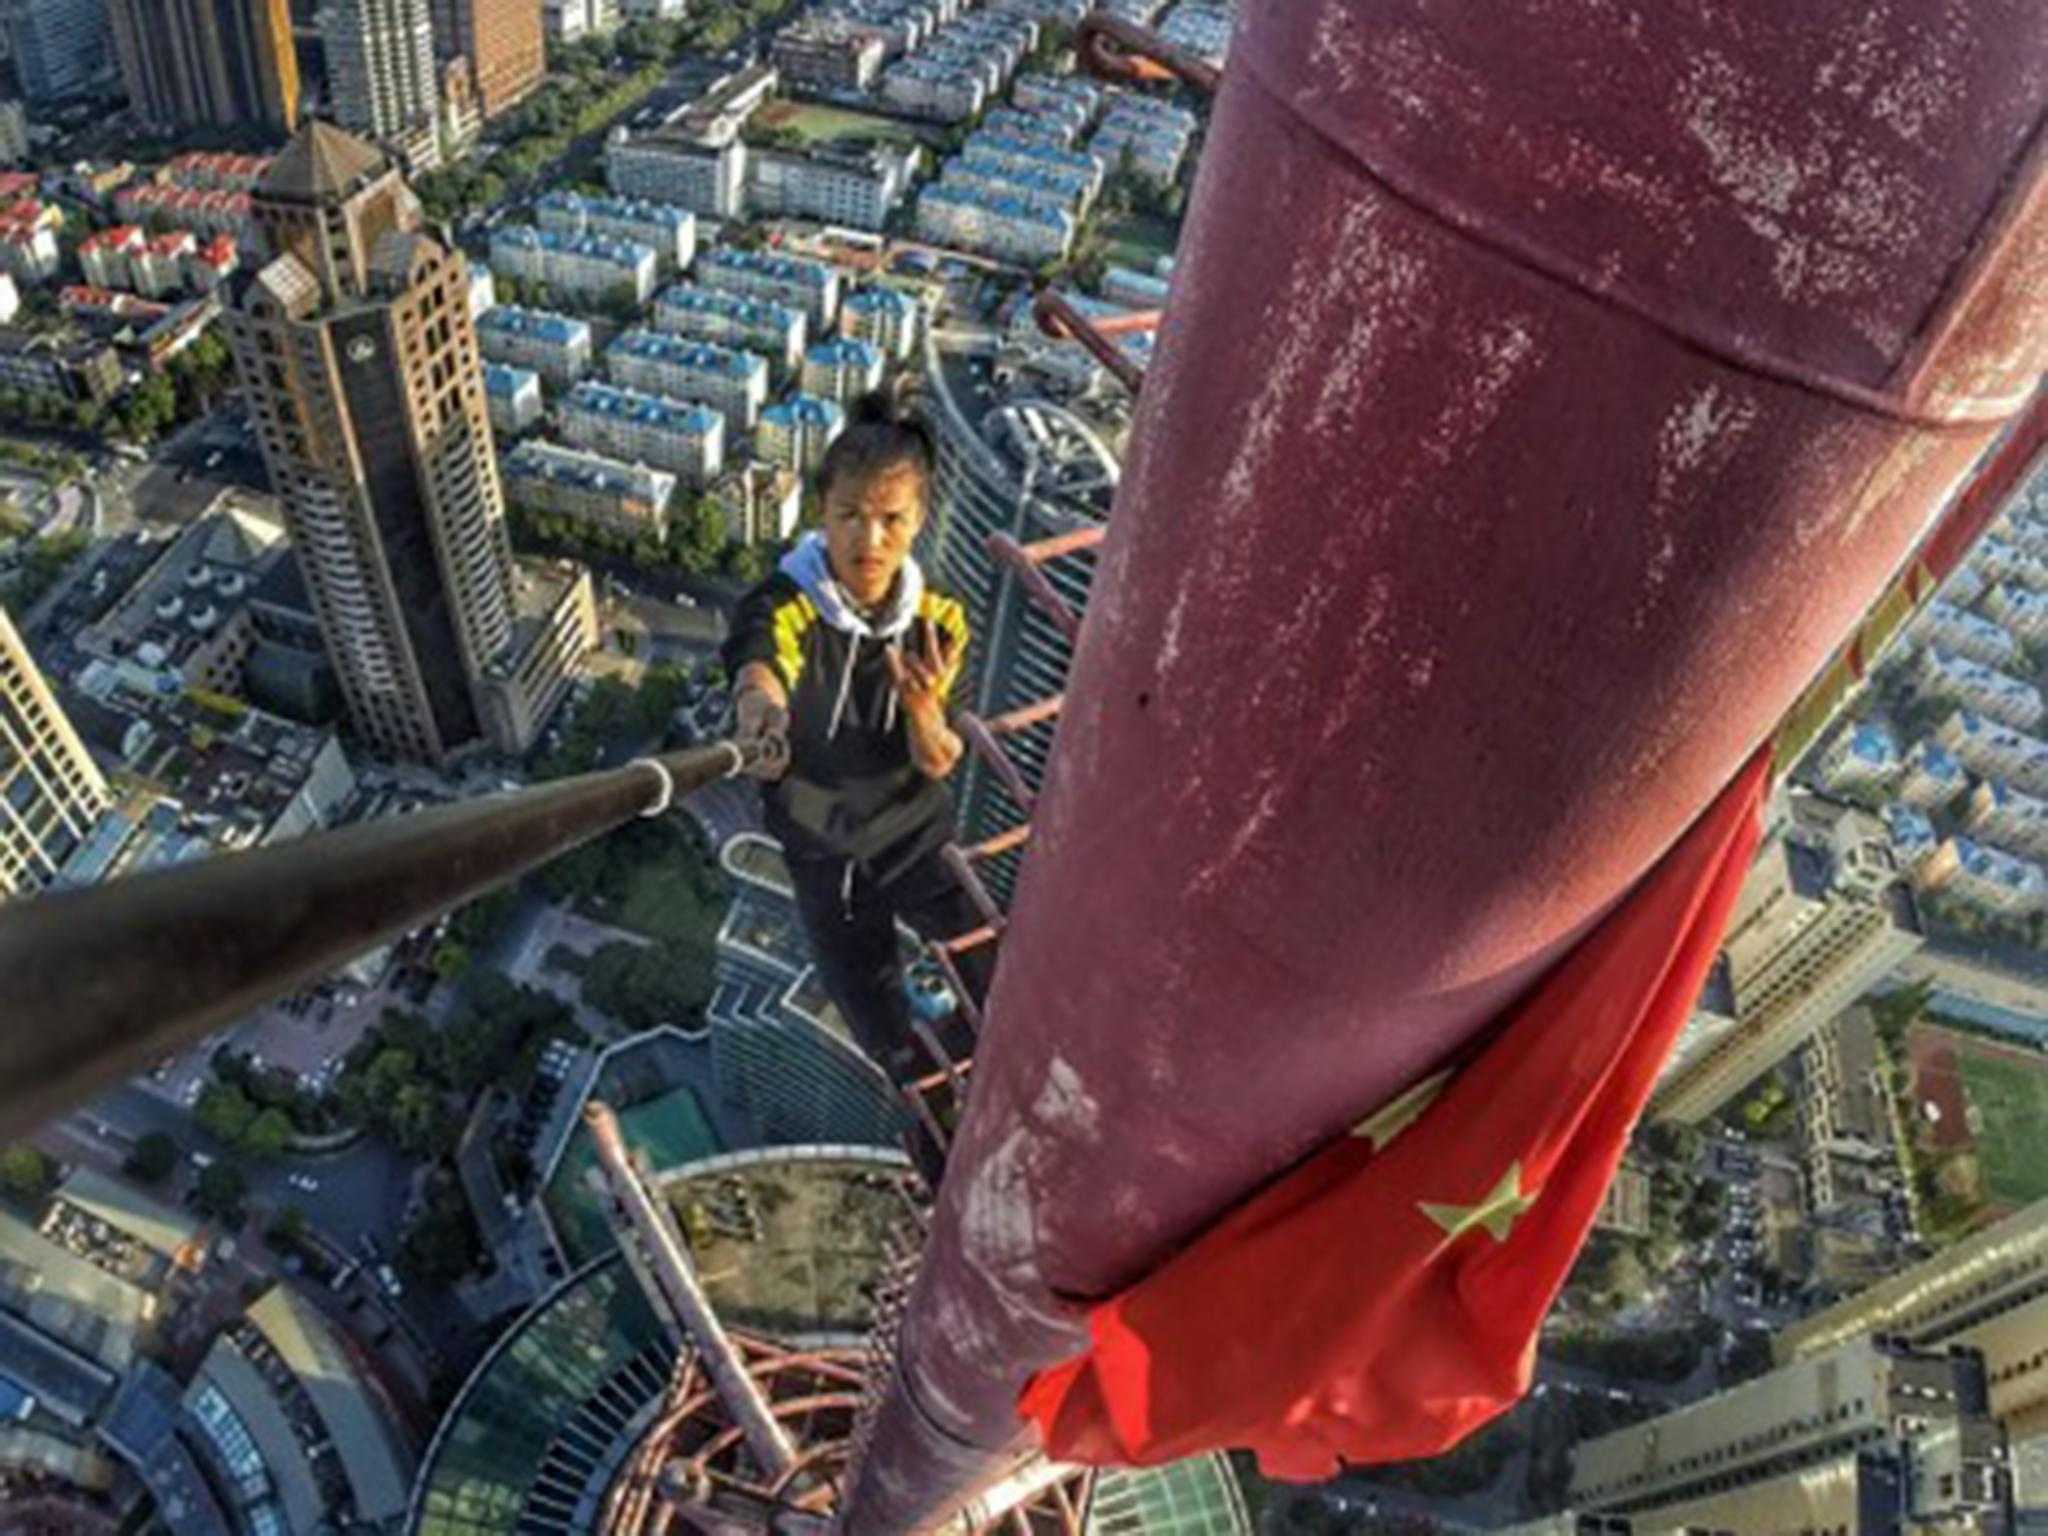 Wu Yongning: Chinese 'rooftopper' and social media star dies in fall from 62-storey building